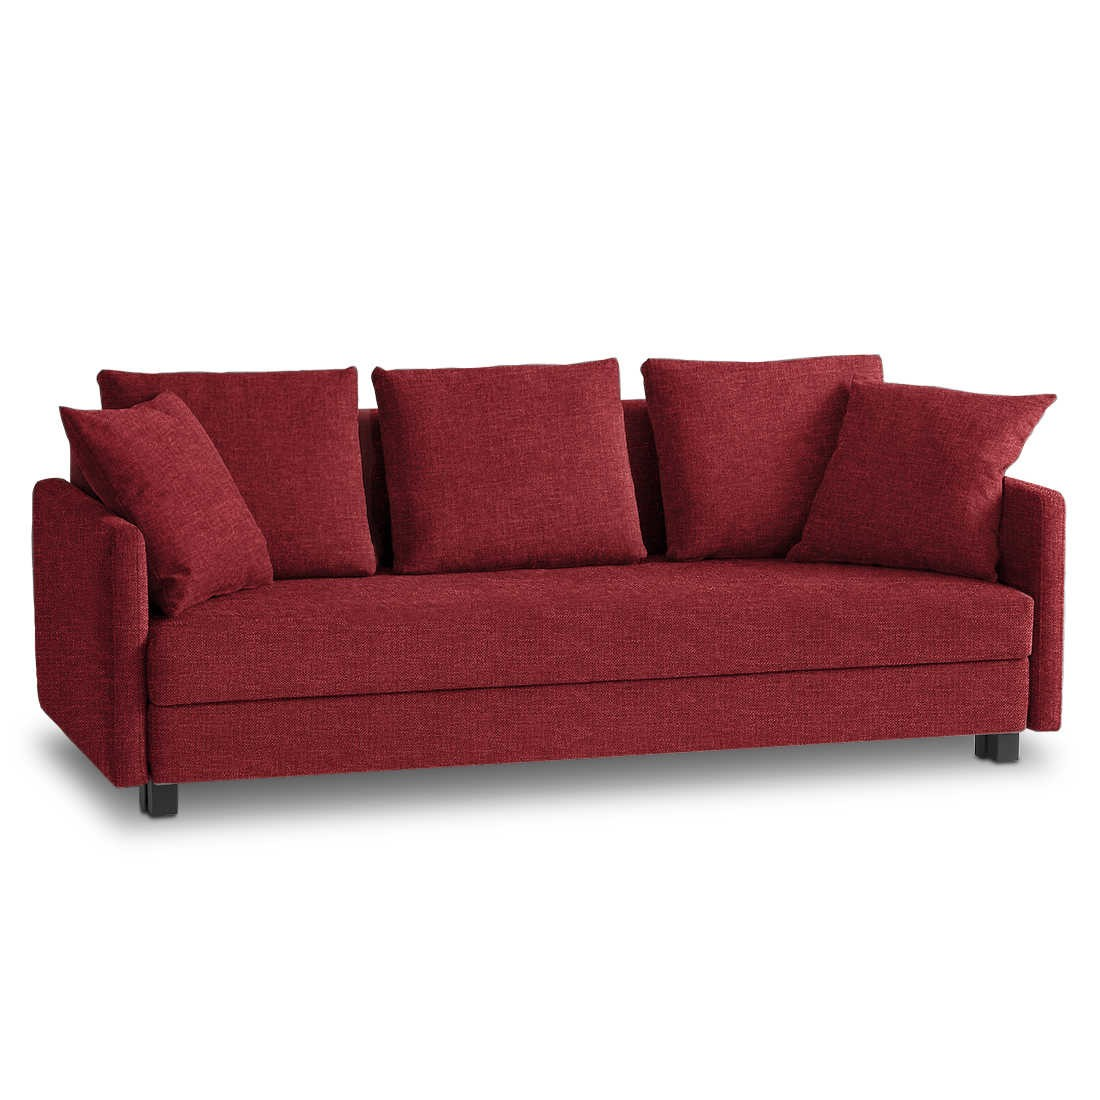 franz fertig schlafsofa jester rot stoff online kaufen bei woonio. Black Bedroom Furniture Sets. Home Design Ideas